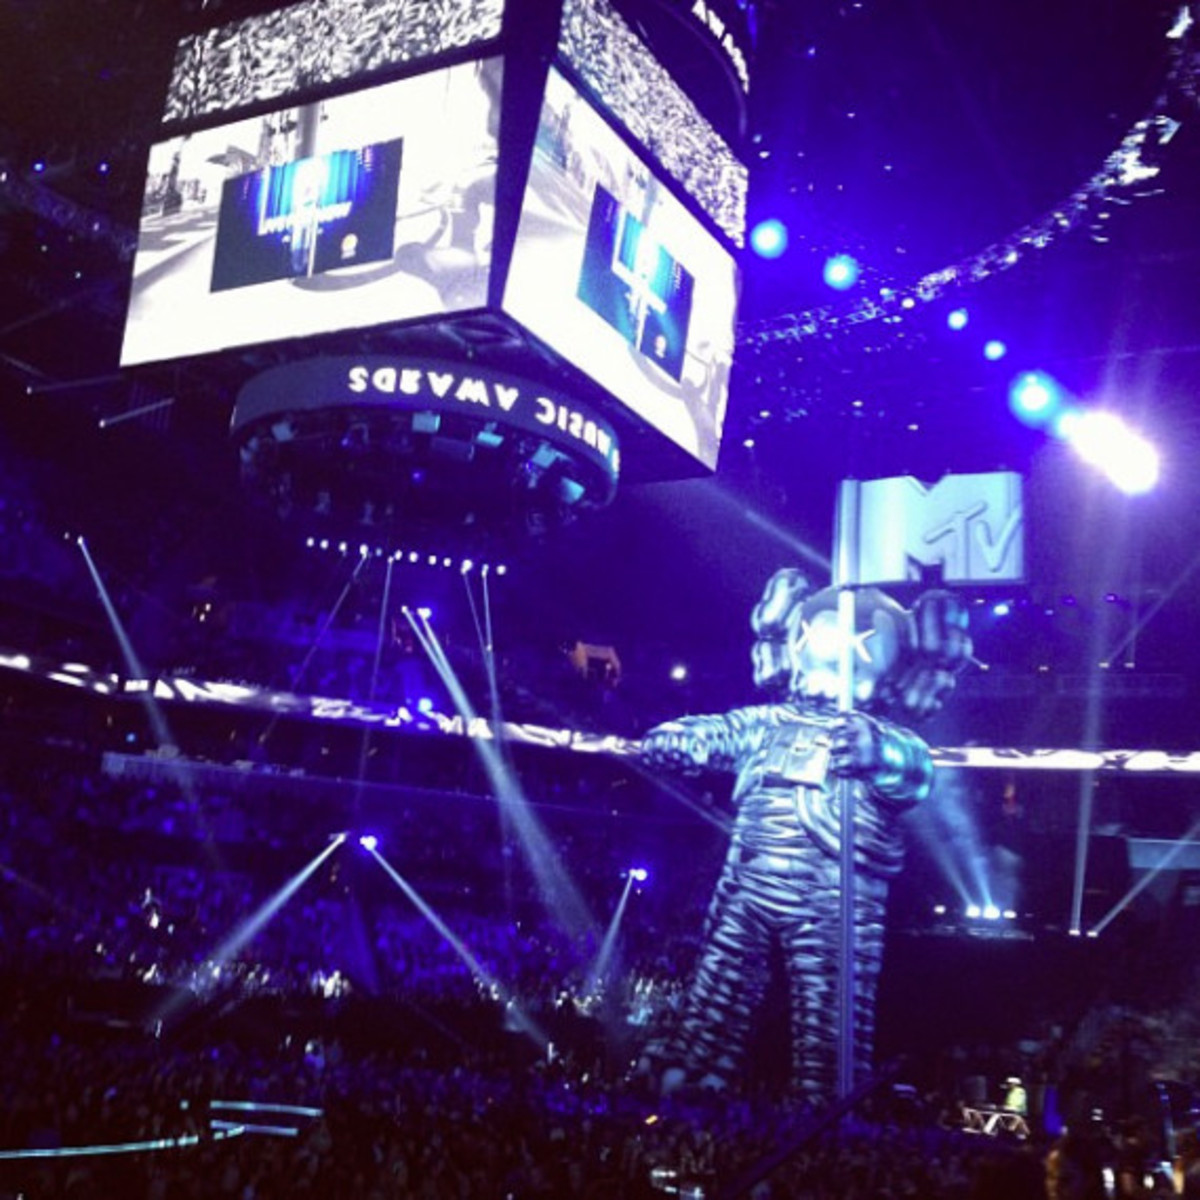 2013 MTV Video Music Awards Unveiled 60-Foot Moonman Statue by KAWS - 4